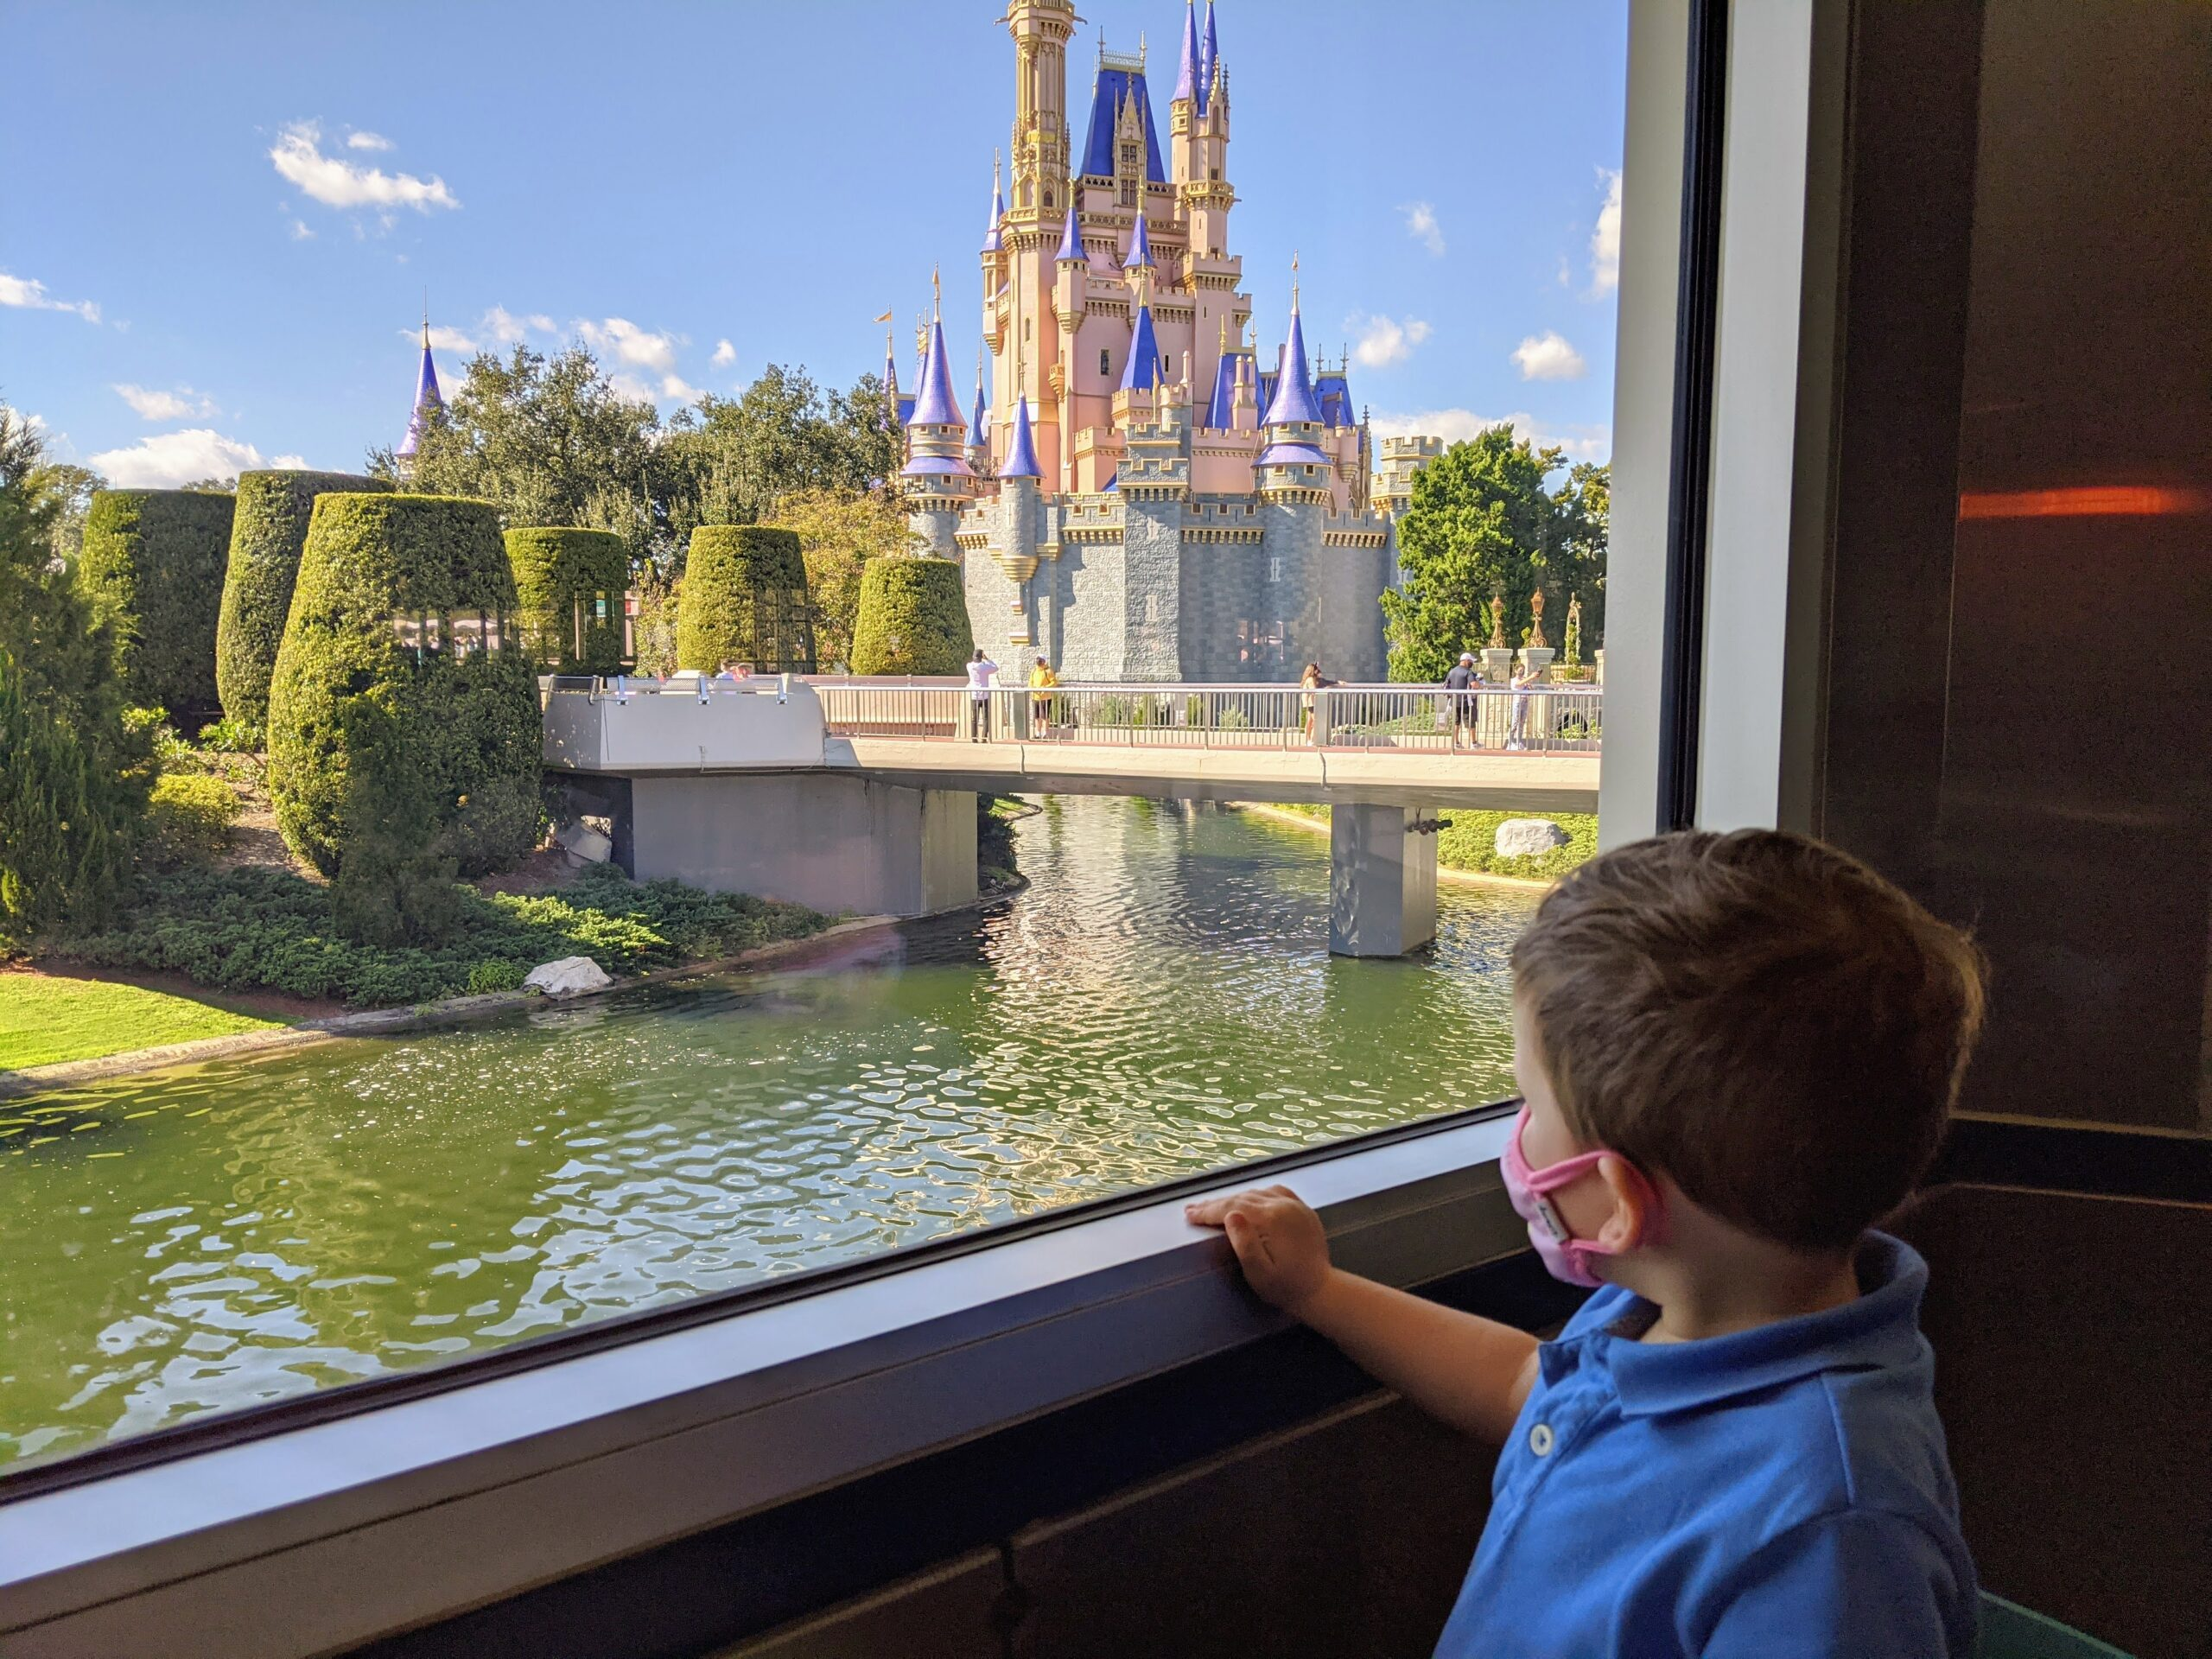 Cinderella's Castle from Comic Ray's Starlight Cafe with Lincoln